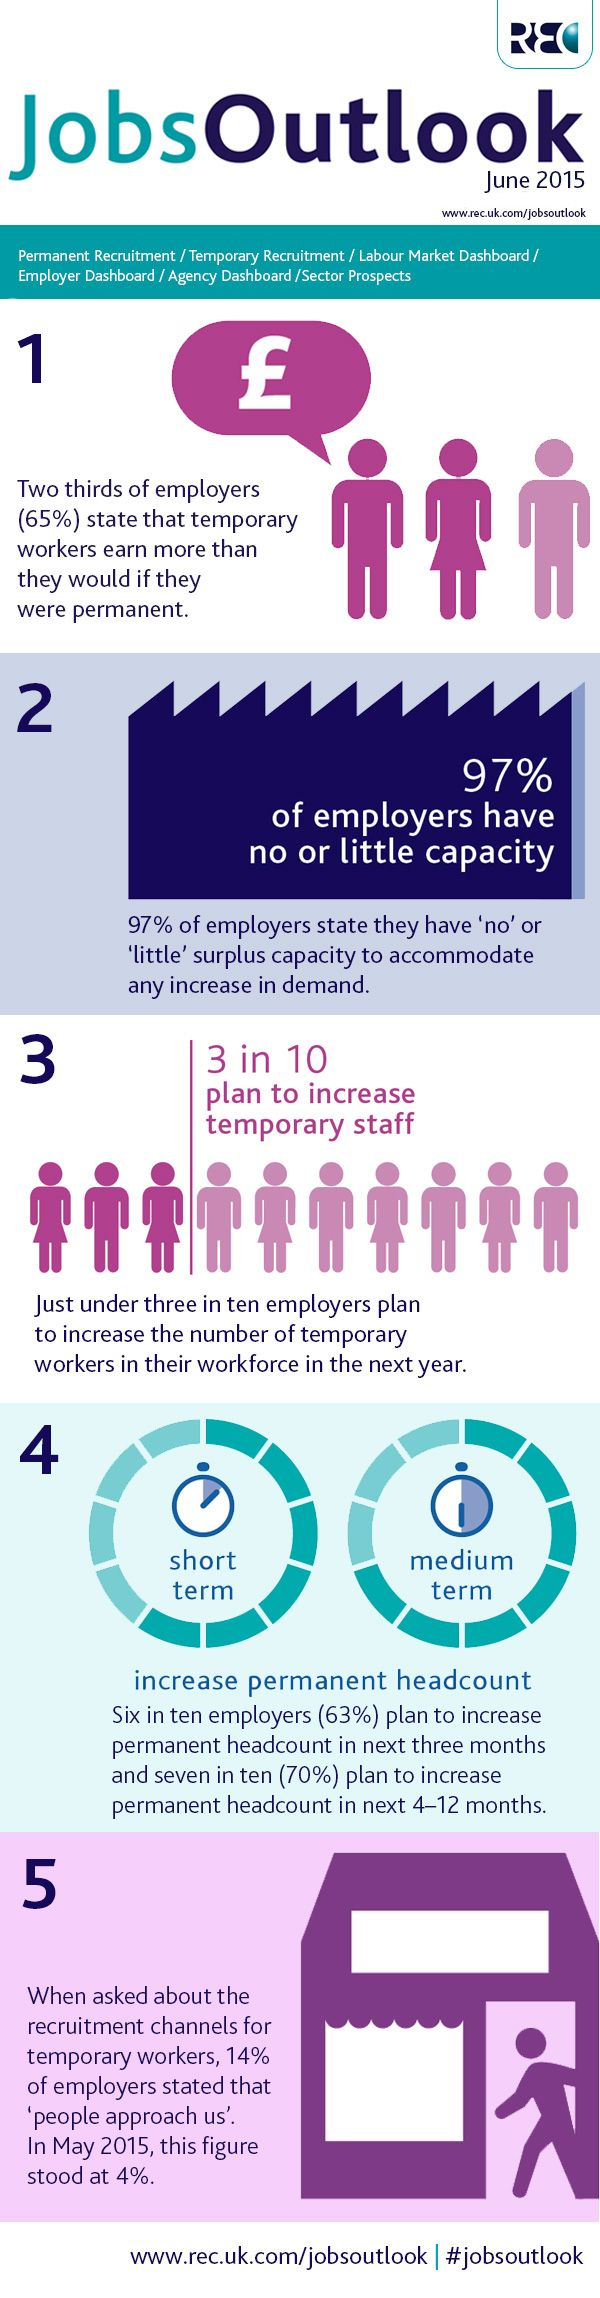 Modern-day temps provide companies with strategic skills, earn more than permanent employees #JobsOutlook #infographic